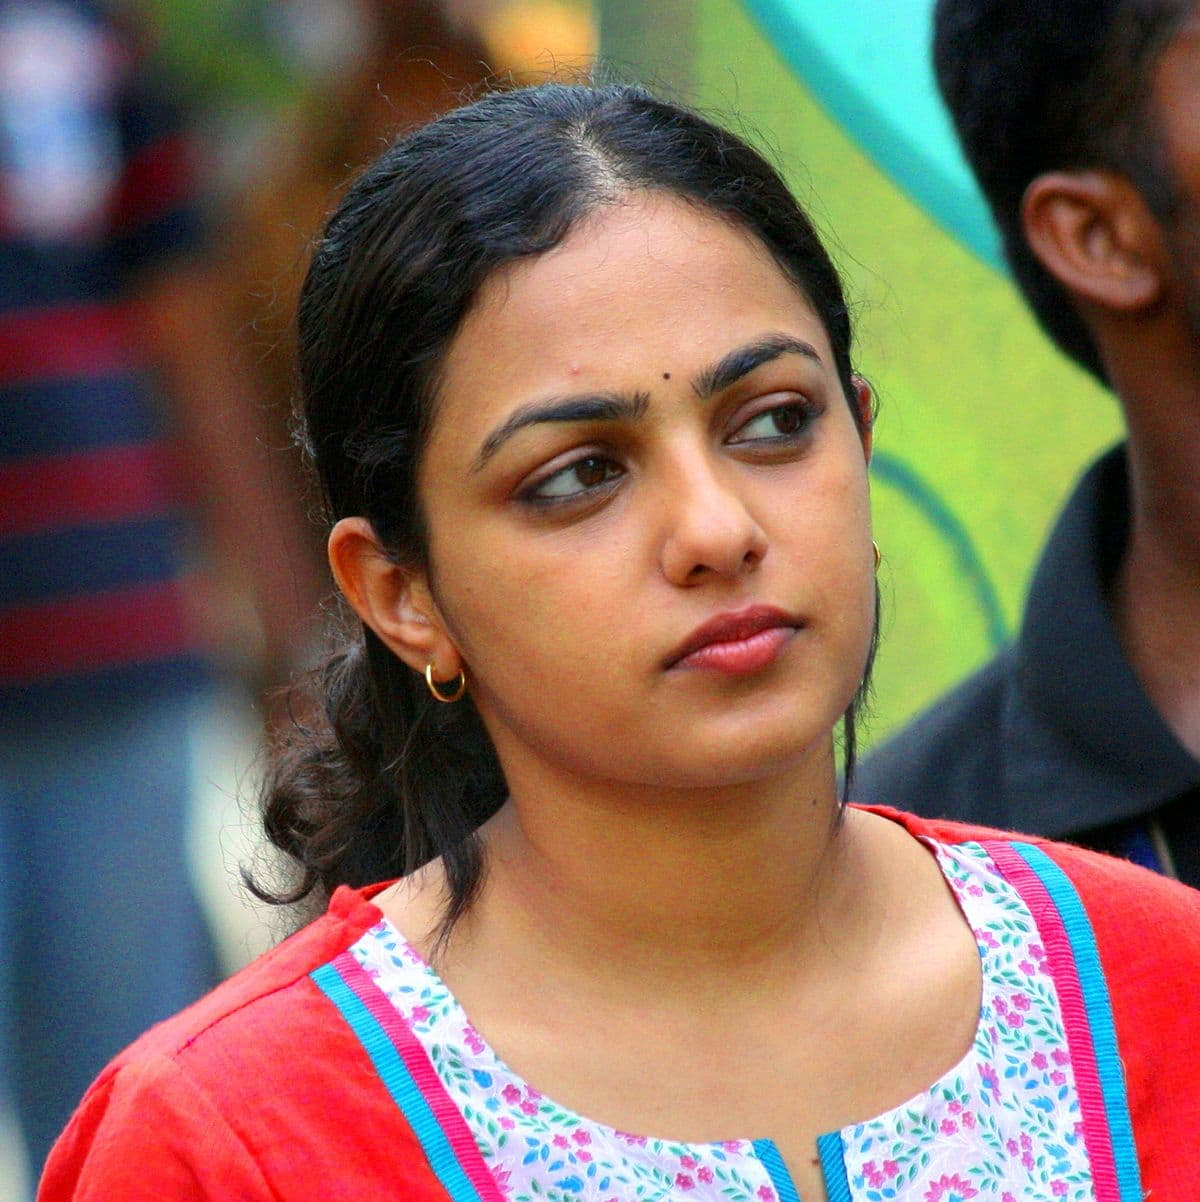 Mollywood Director V K Prakash To Rope In Nithya Menen For His Next Directorial